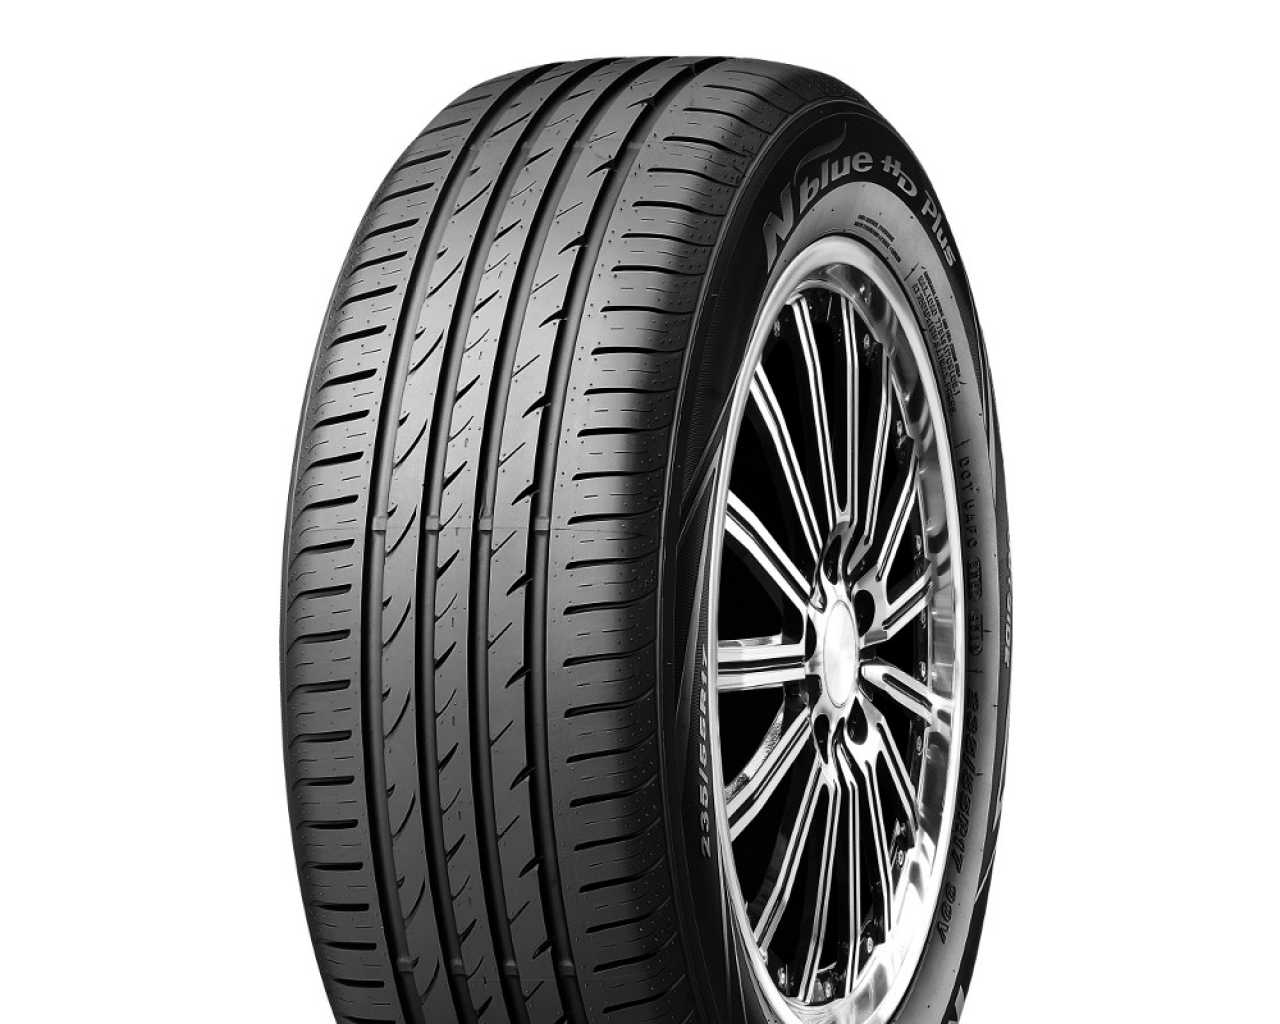 225 60r17 nexen n 39 blue hd plus buy online at agrigear ireland 39 s tyre and wheel specialists. Black Bedroom Furniture Sets. Home Design Ideas